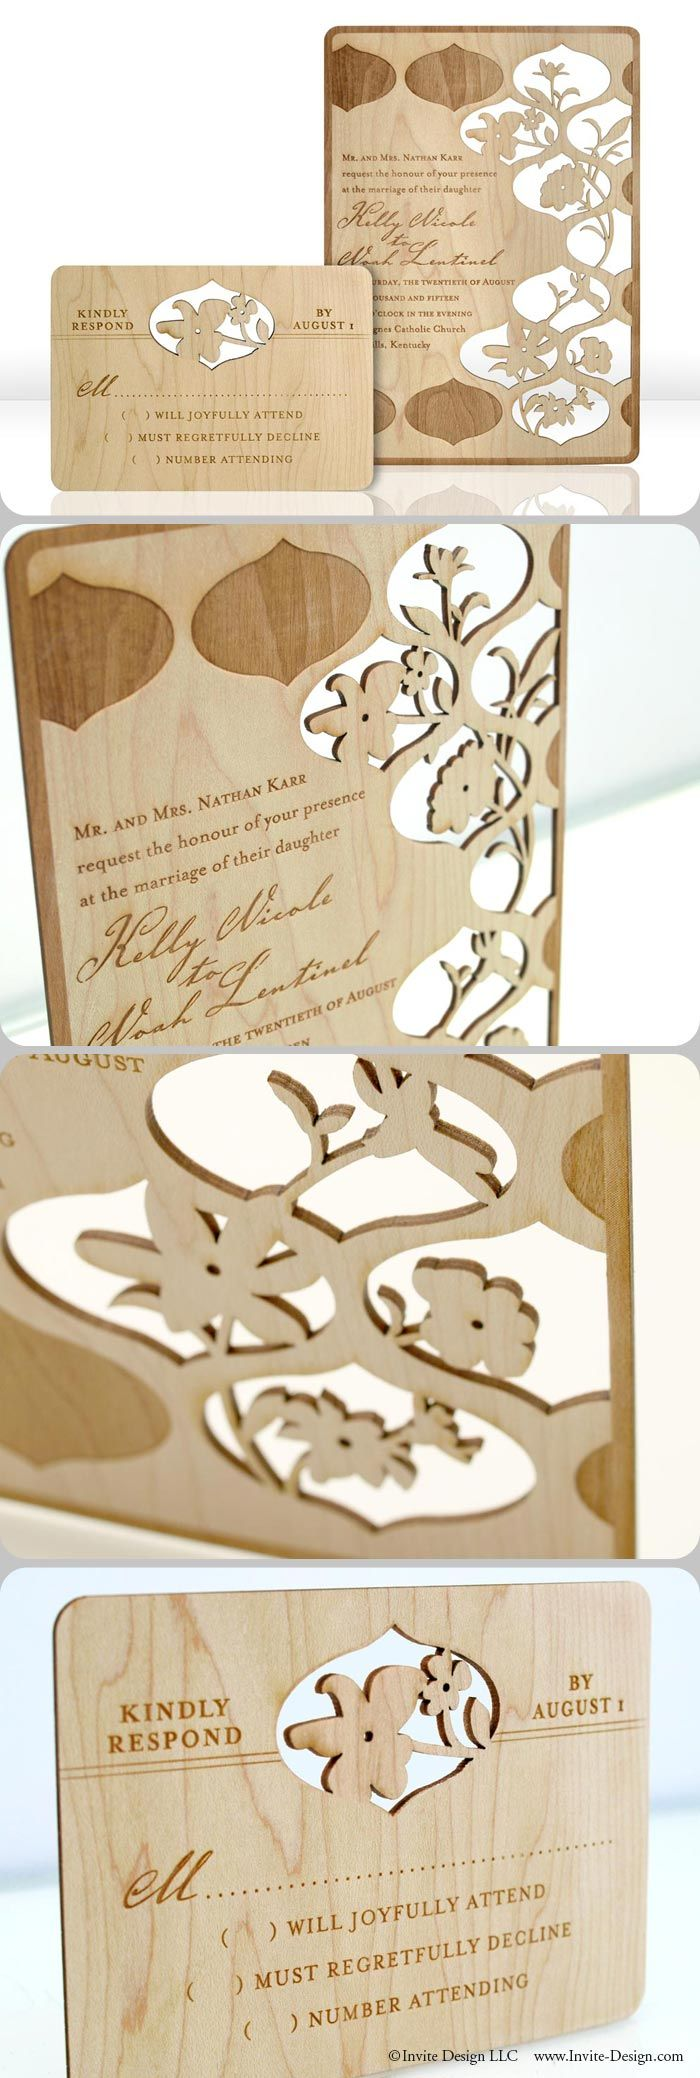 "Laser cut wood wedding invitations. These floral wedding invitations and accompanying response cards feature stunning engraved detail. Laser cut into 1/16"" wood planks. http://www.invite-design.com/#!product/prd12/4250380315/trellis-invitation-with-rsvp"